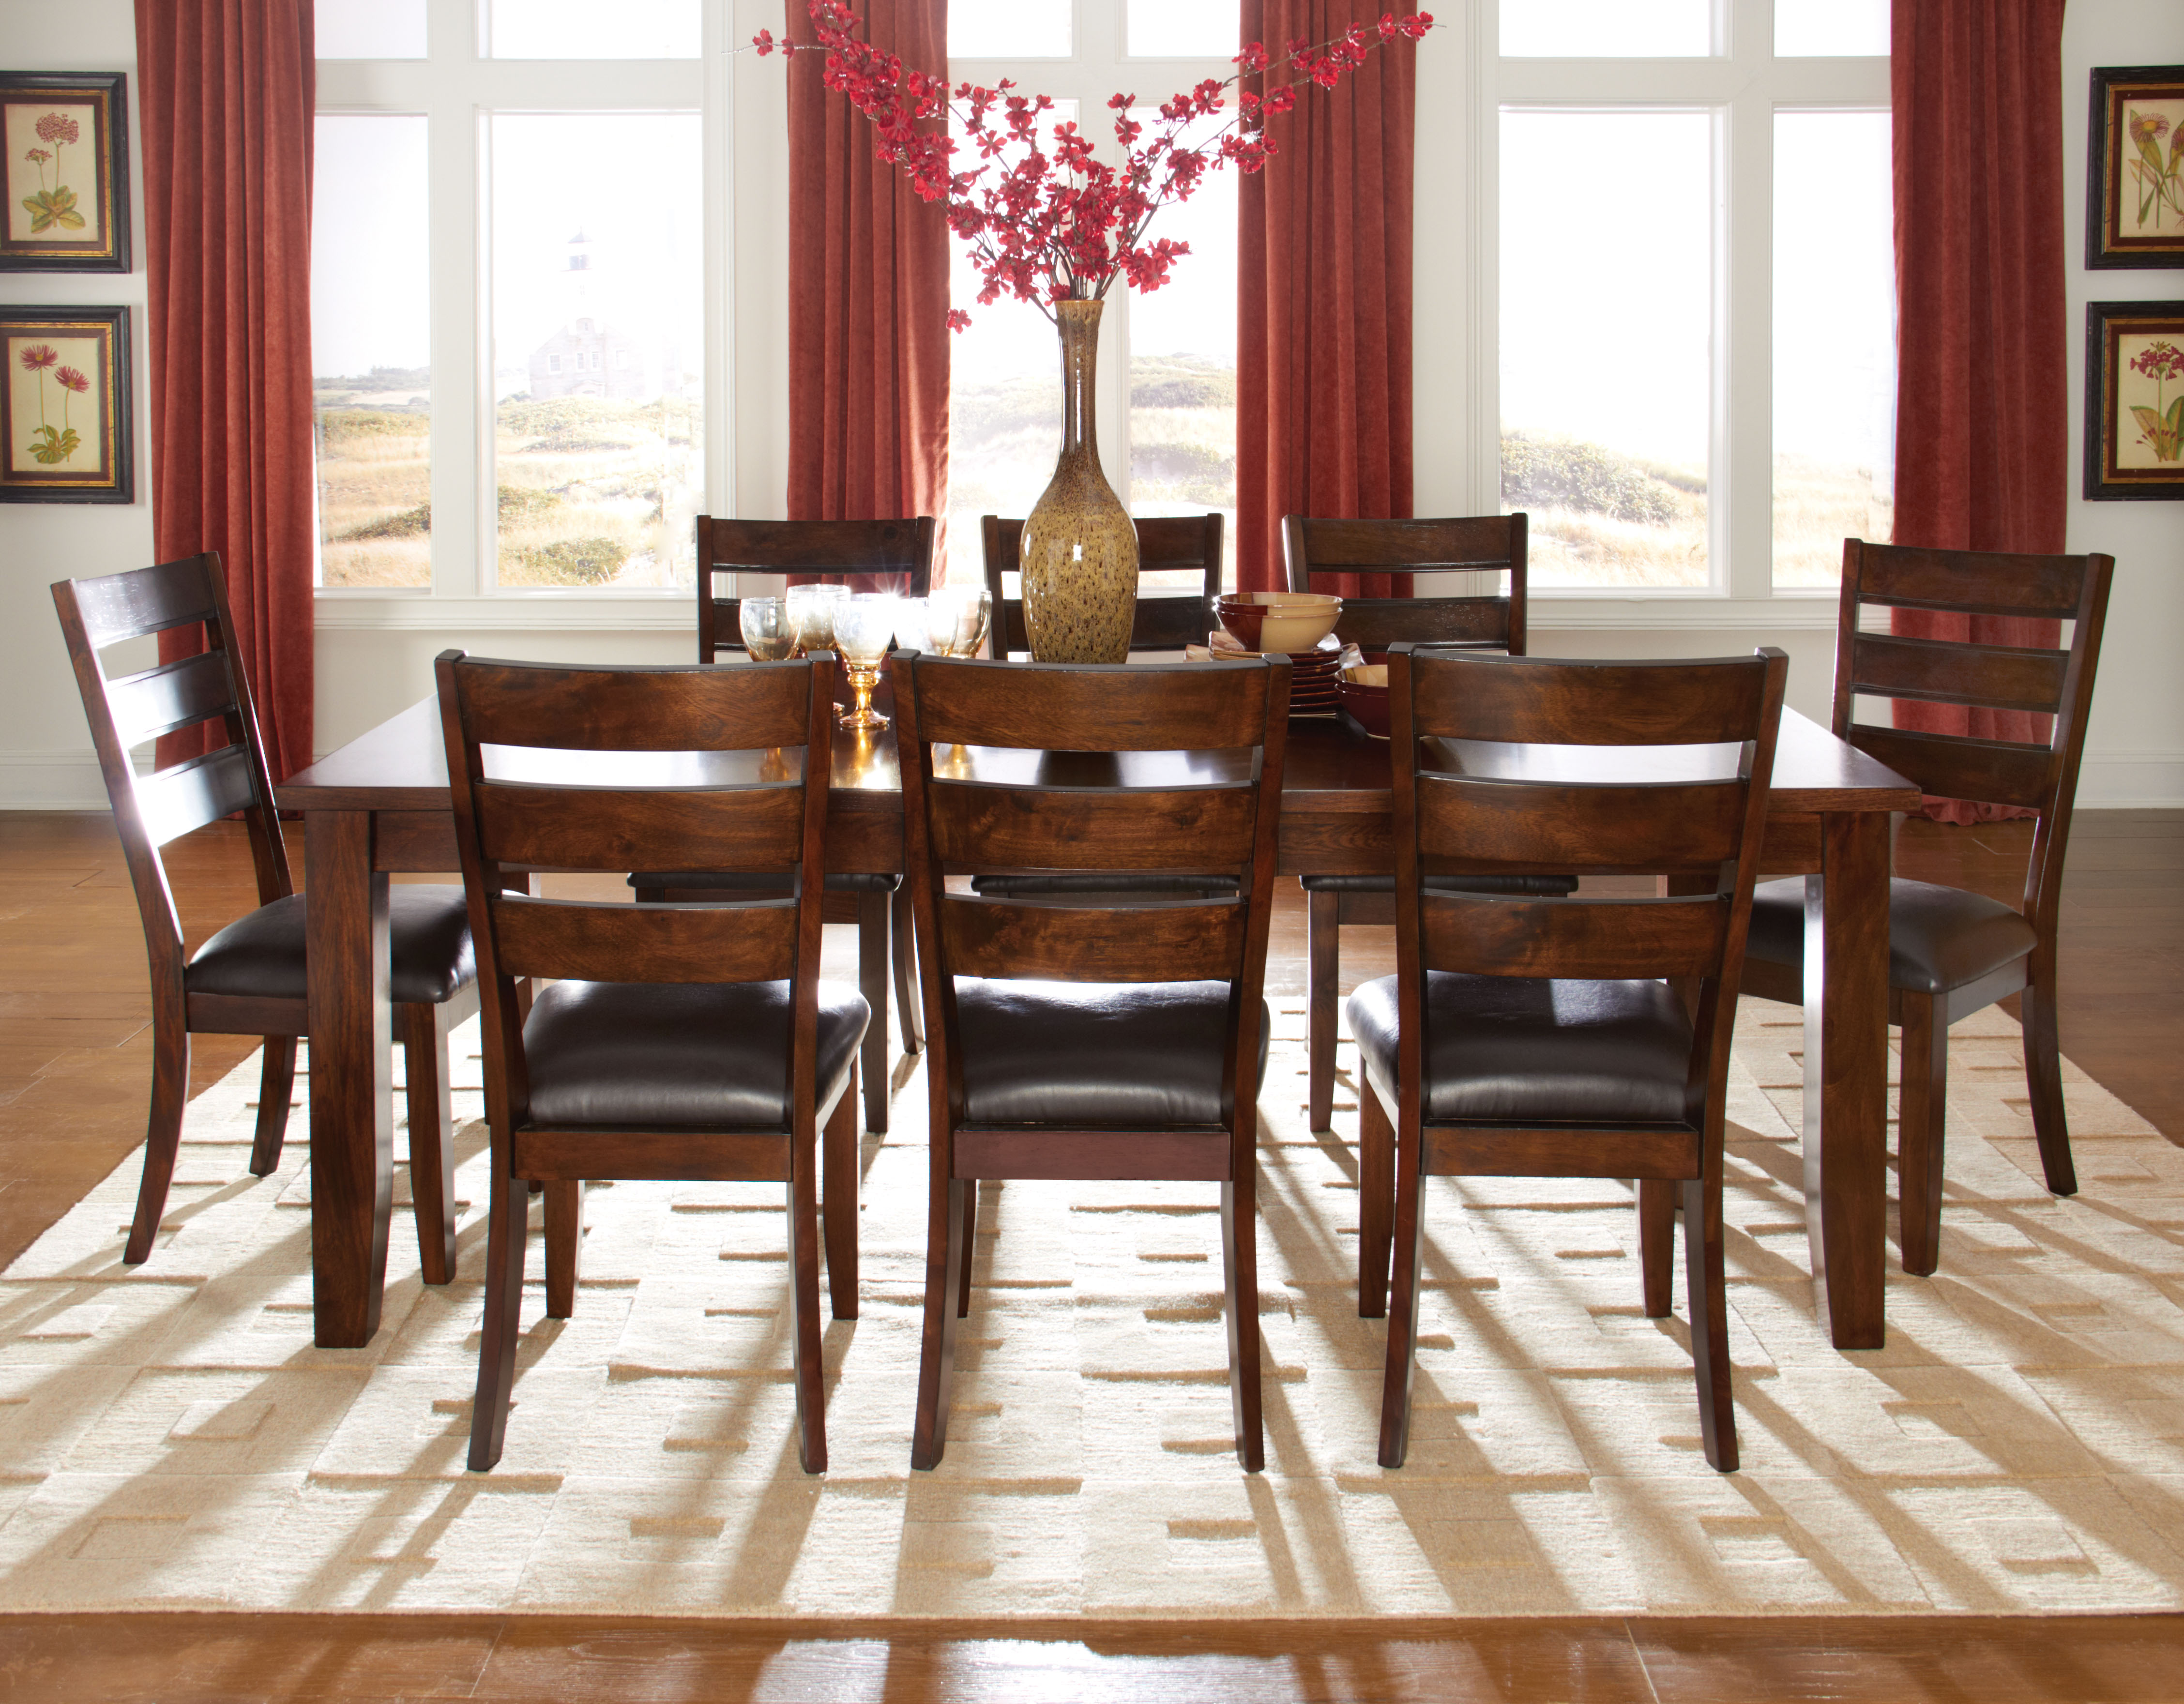 Abaco dark tobacco brown dining room set the classy home for Best deals on dining room sets